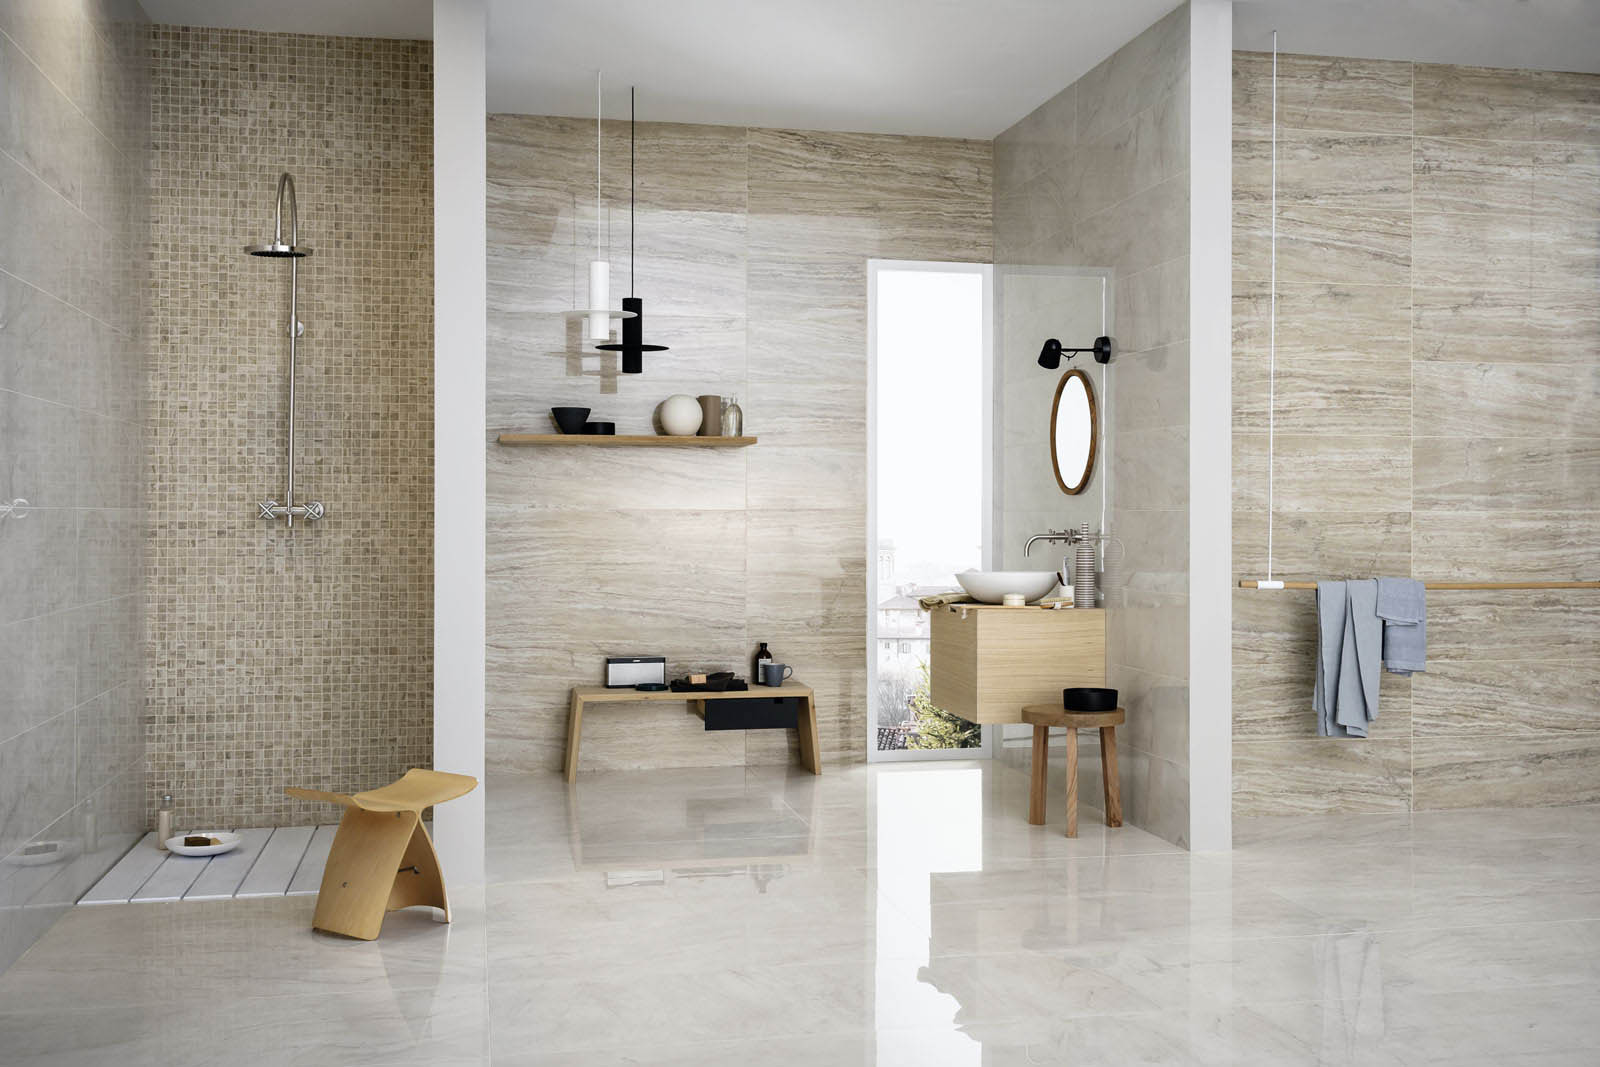 Azulejos Baño Marmol:Ceramic Tile Bathroom